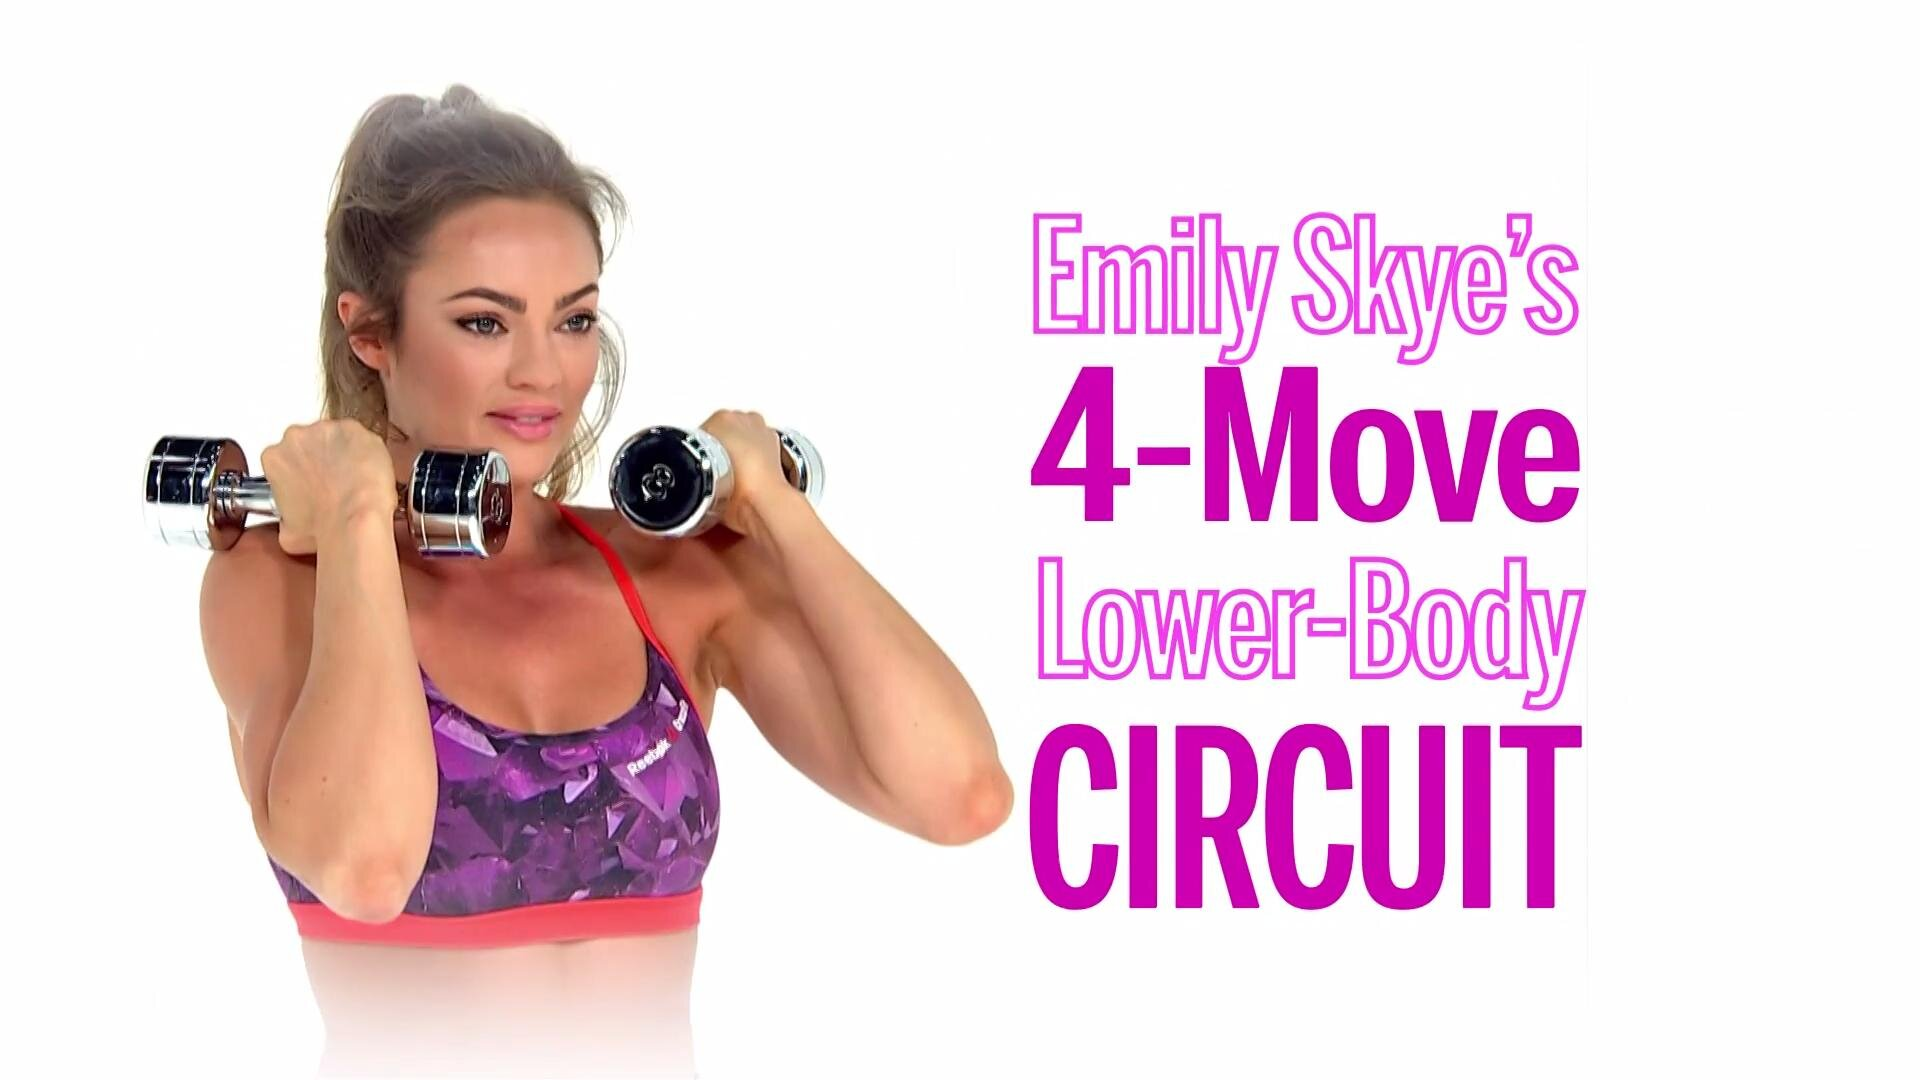 The Best Online Emily Skye Workout Videos Health Totalbody Circuit You Can Do While Travel Were Obsessed With These Quick Workouts At Home From Super Fit Trainer